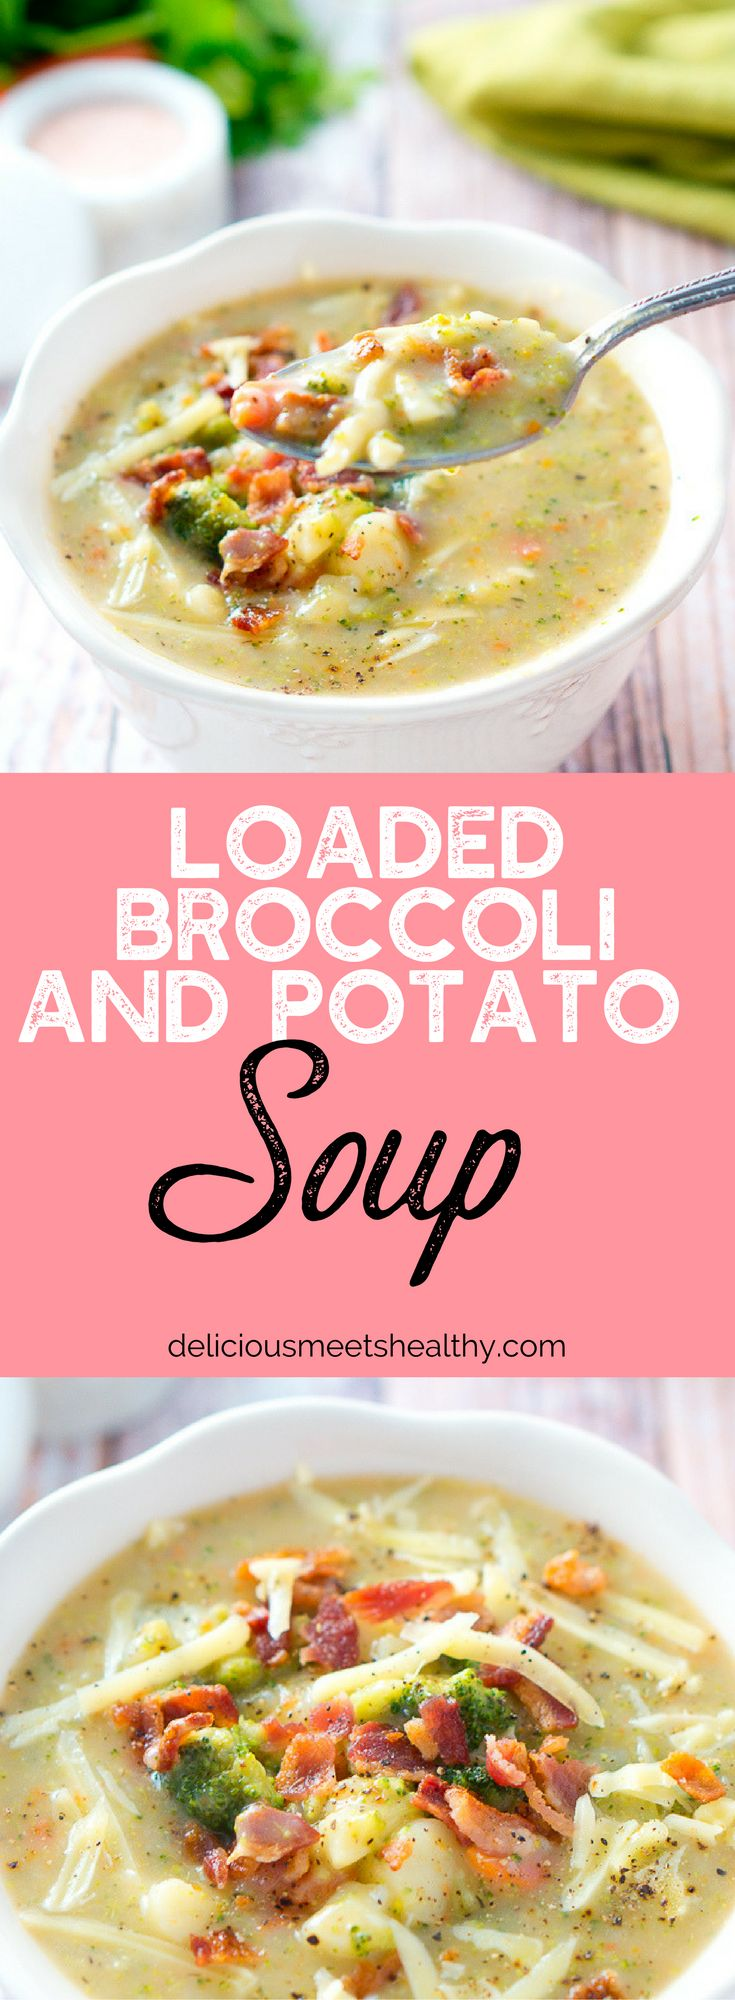 A super simple loaded broccoli and potato soup - a quick light dinner for cold fall and winter nights. Only 30 minutes! It's gluten-free and dairy-free.